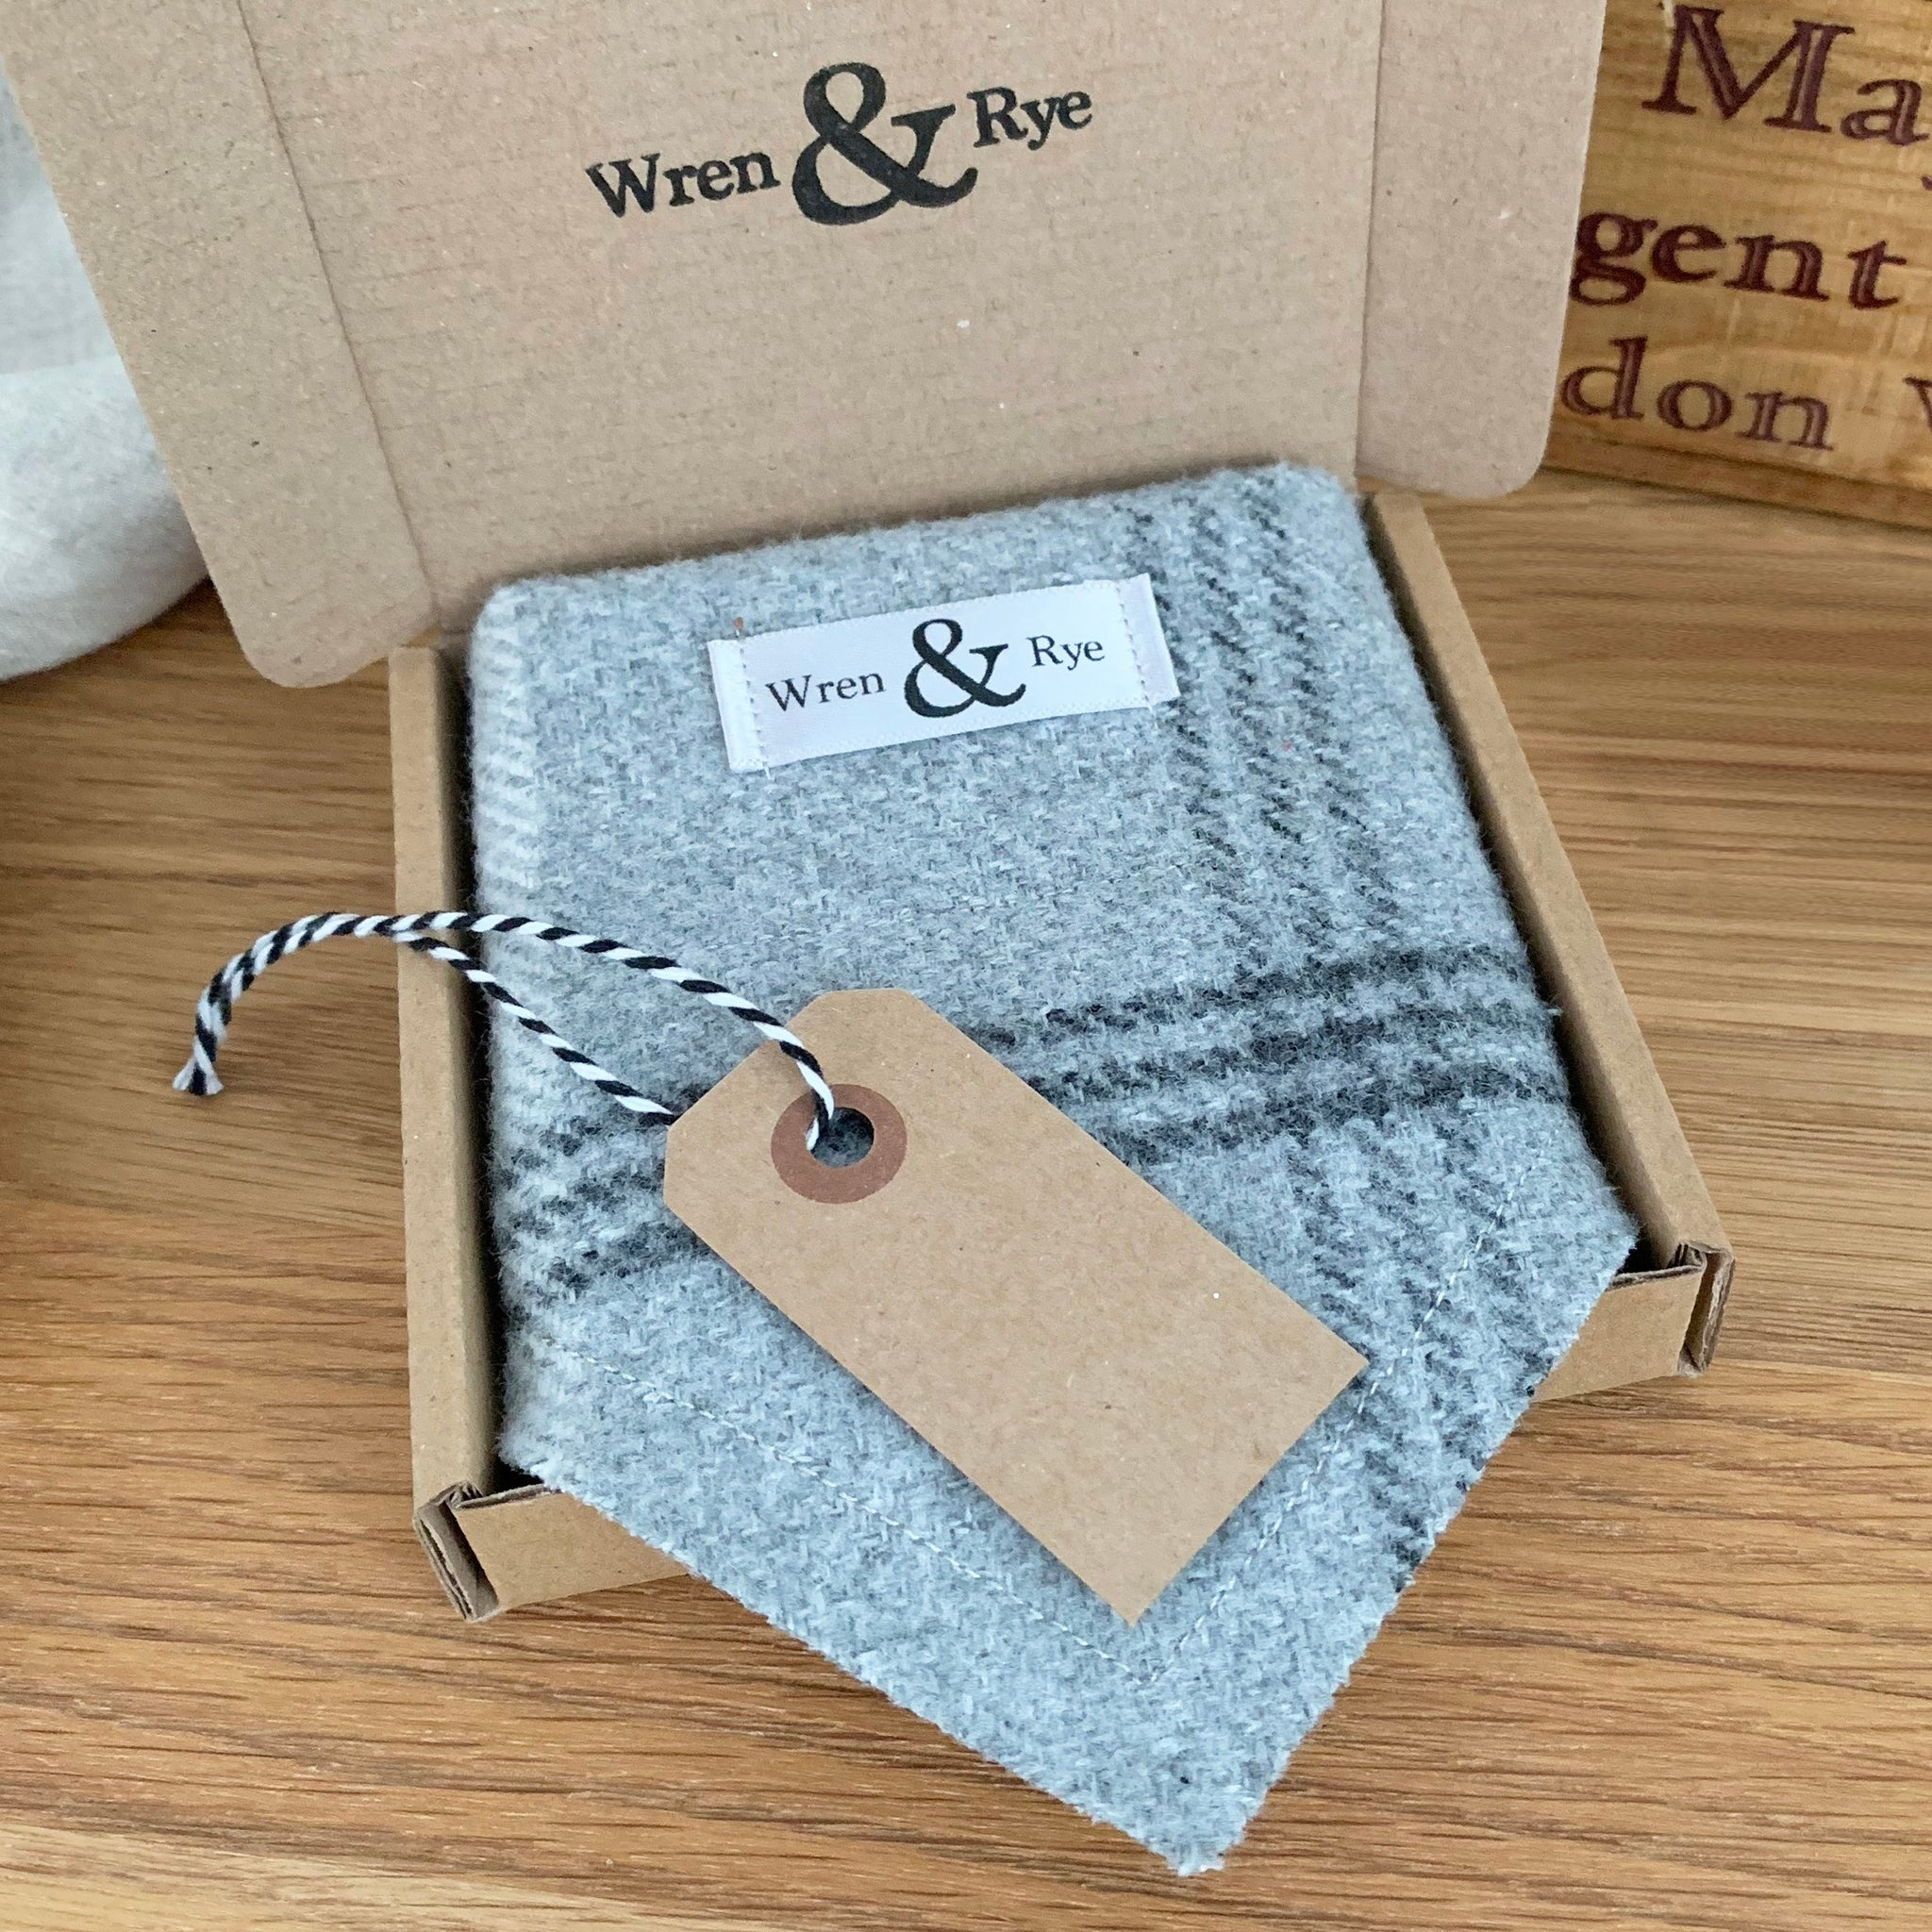 Wren & Rye - Branded Packaging